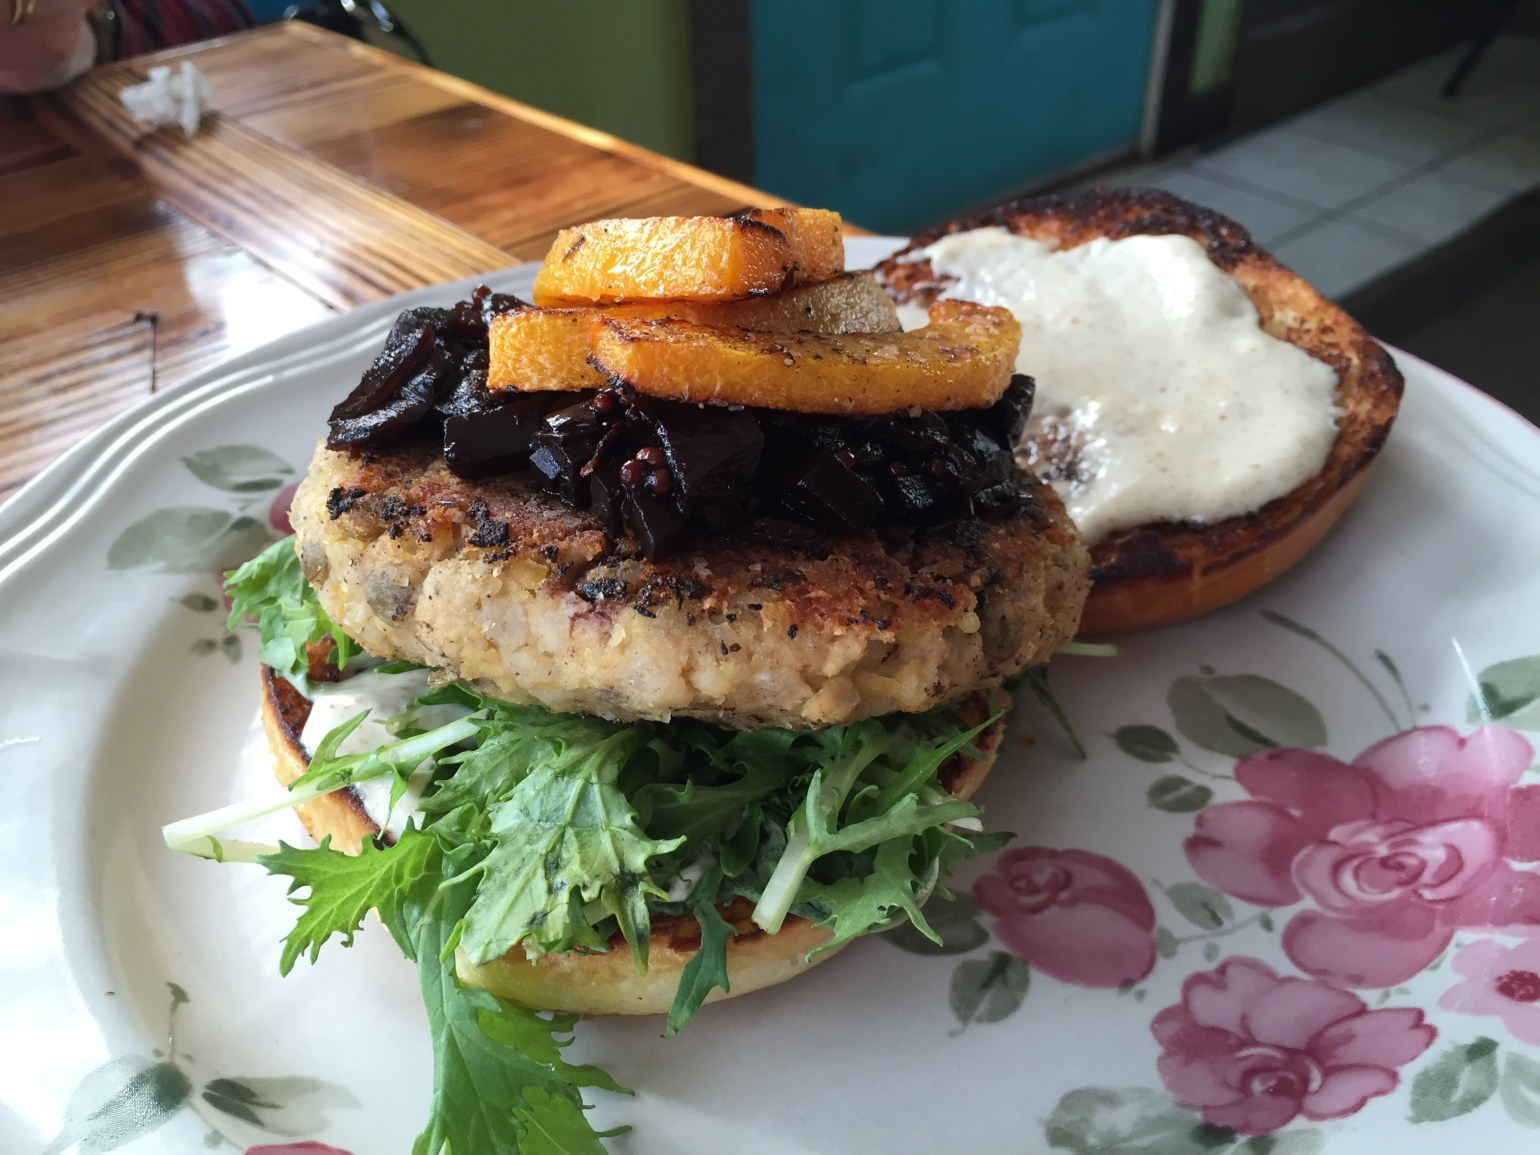 The multi-grain veggie burger with beet and onion jam at Sneaky Pickle